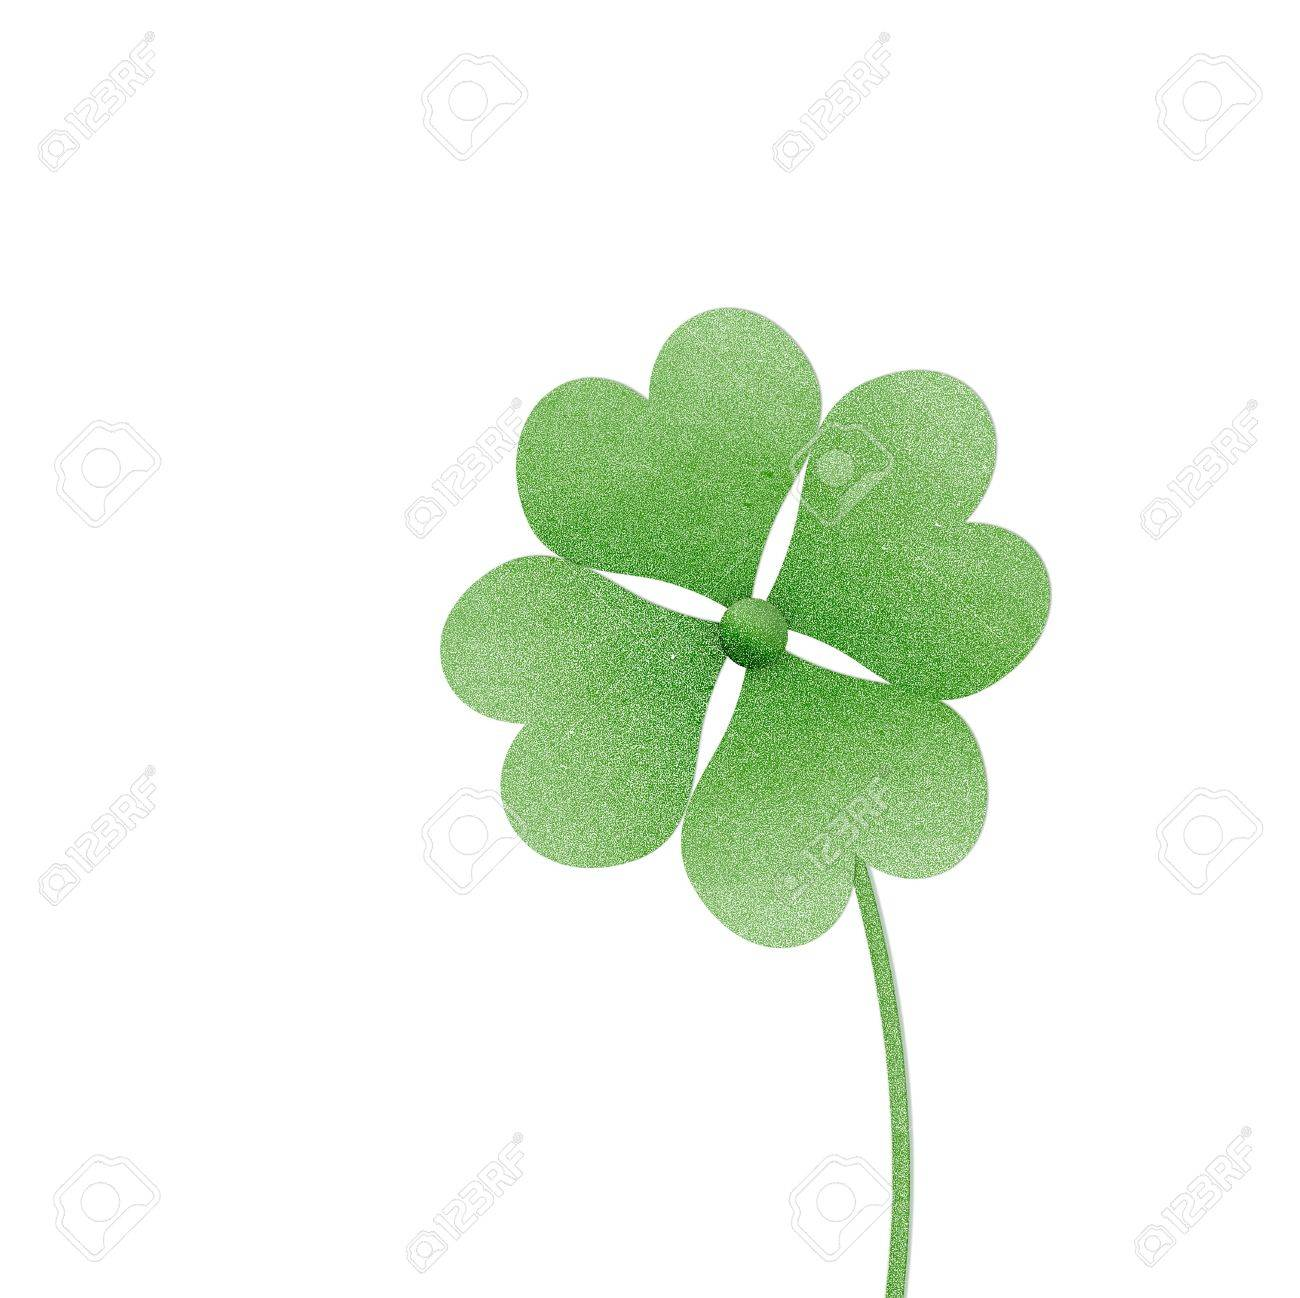 recycle paper clover with four leaves on white background Stock Photo - 15360286